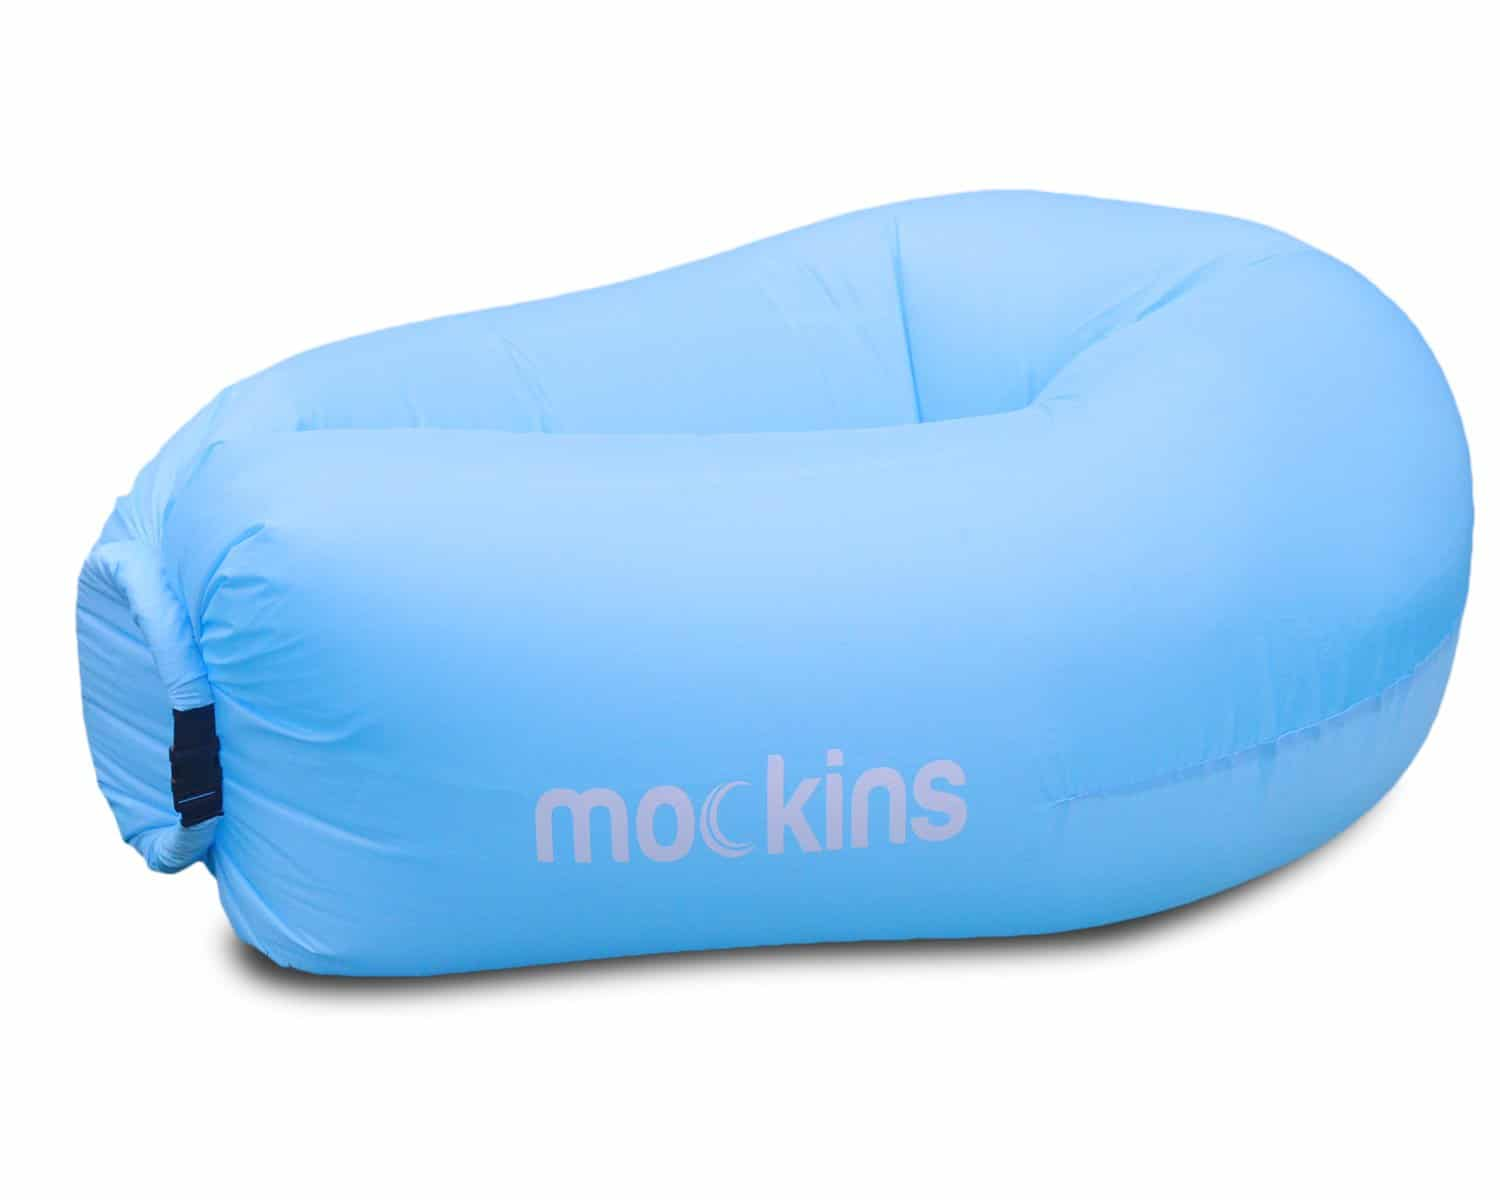 mockins-best-inflatable-chair-kids